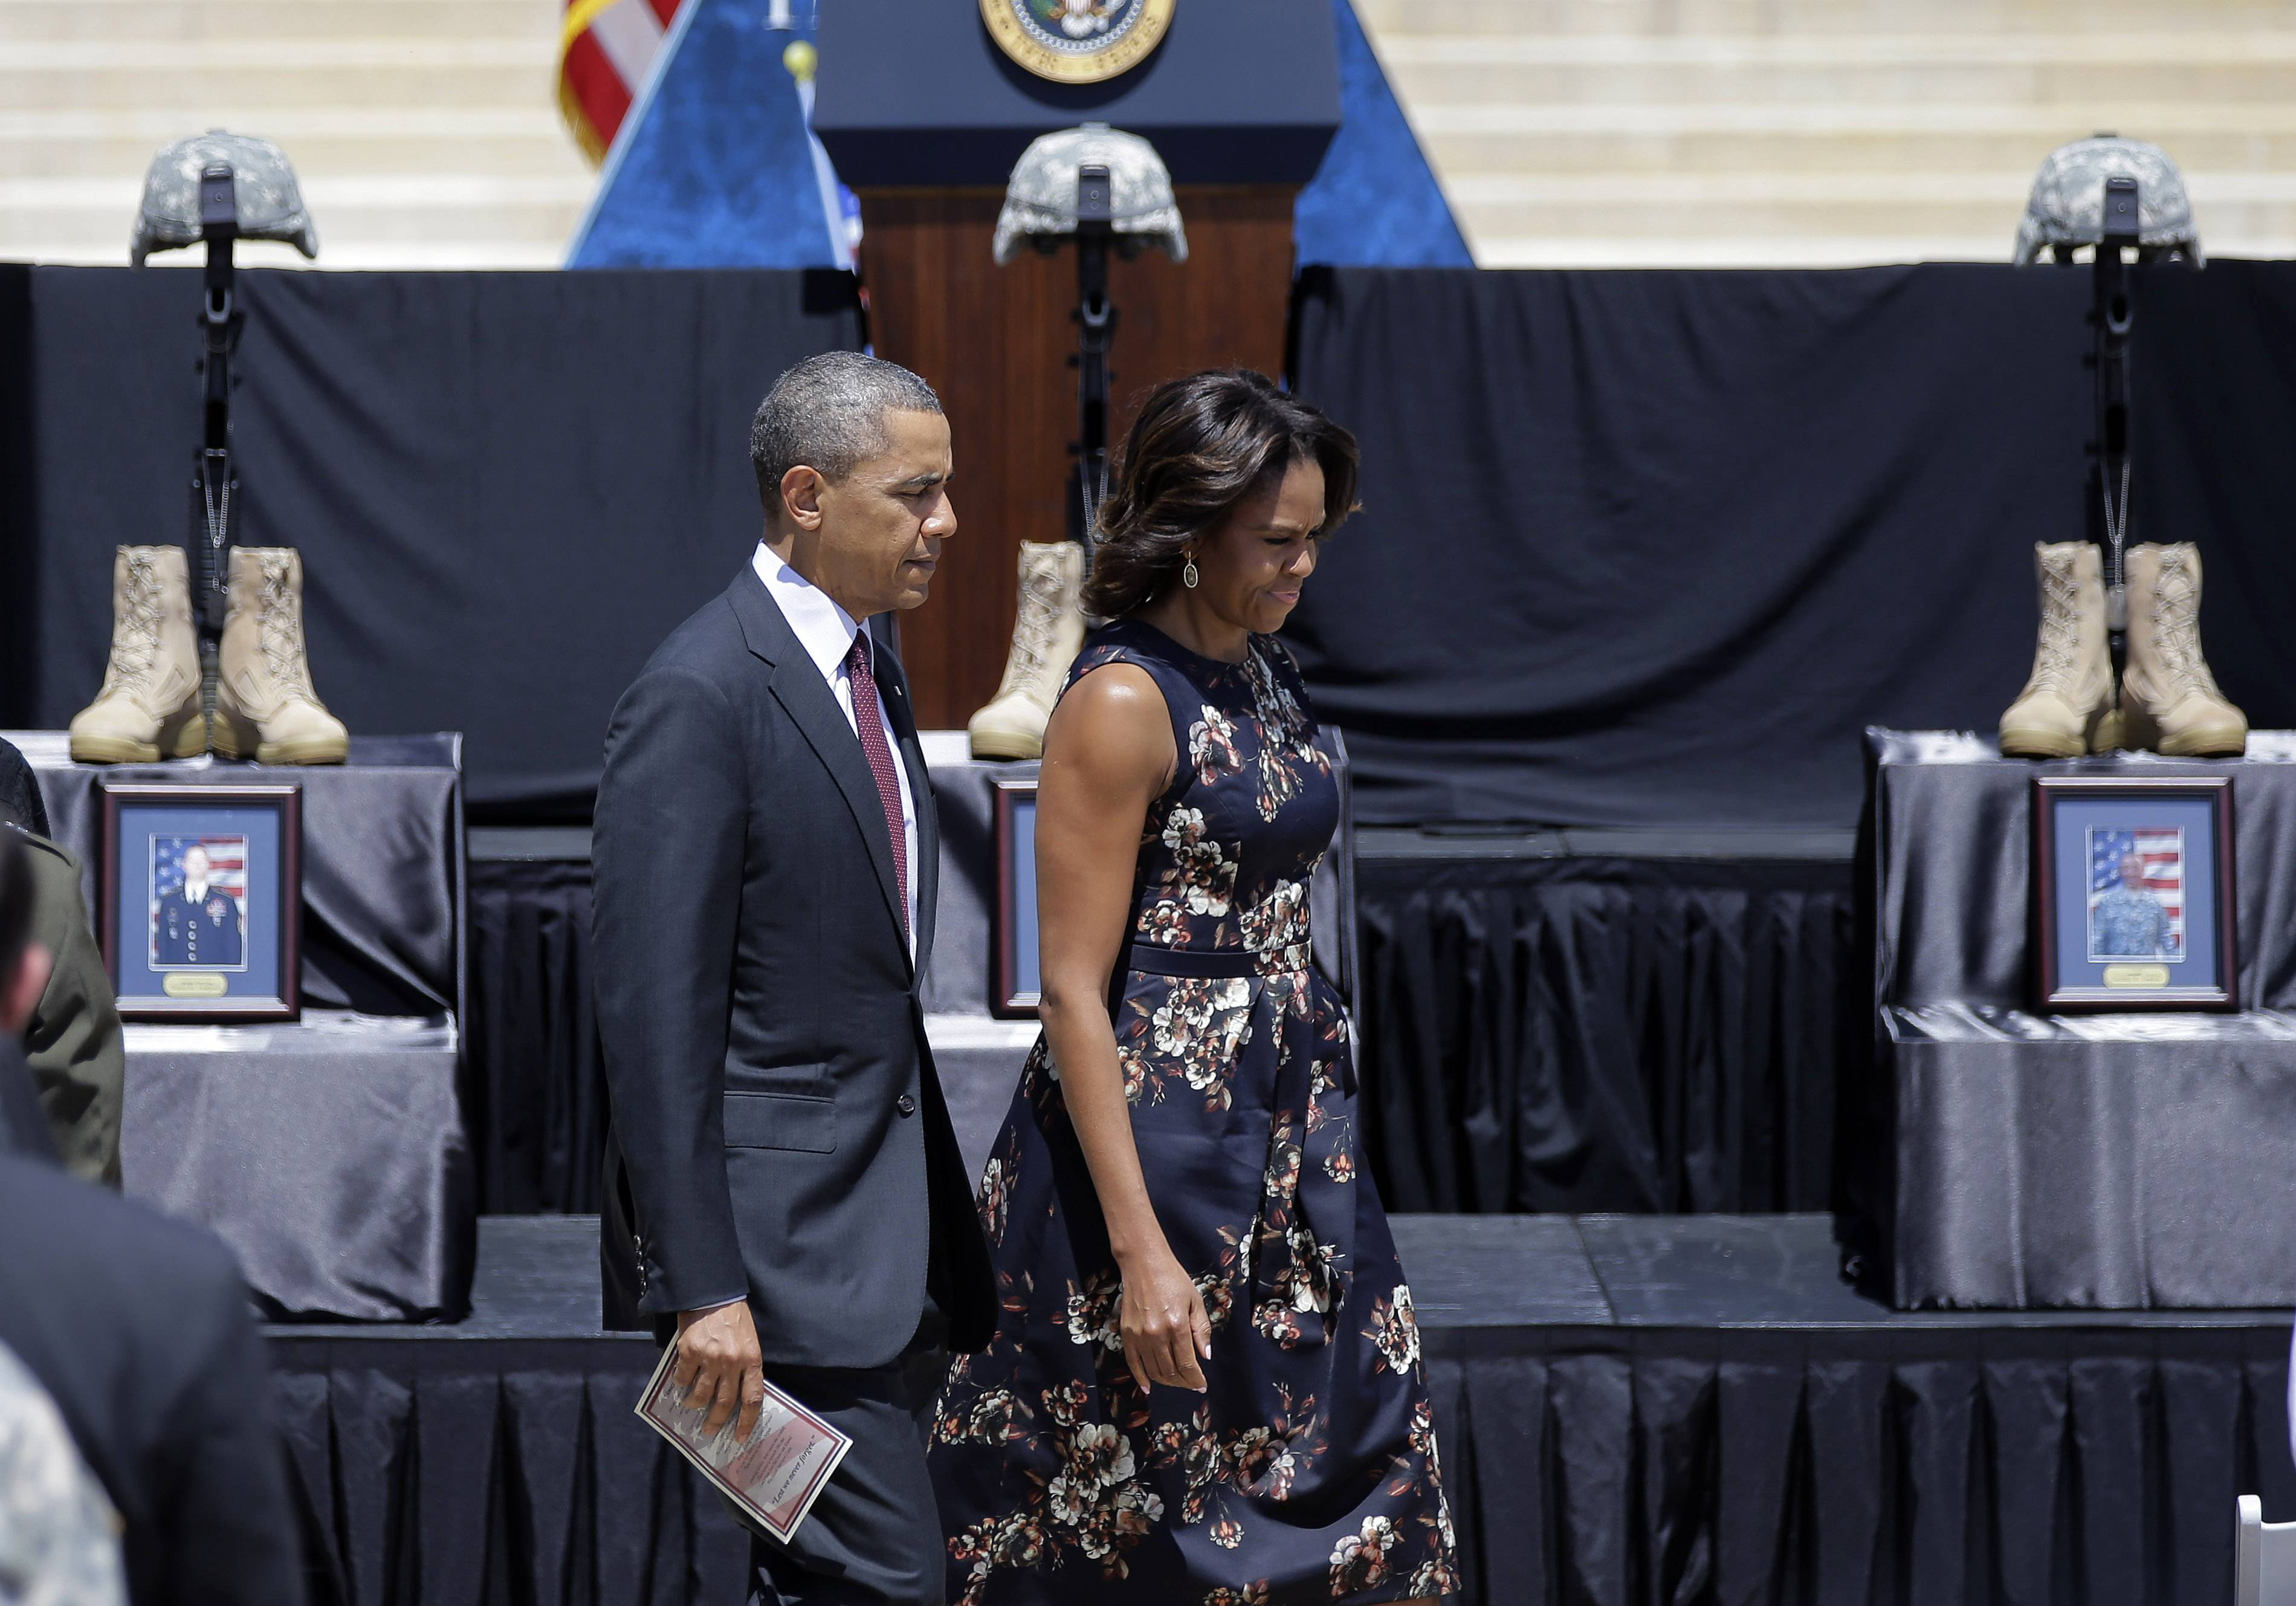 President Barack Obama and first lady Michelle Obama arrive at a memorial ceremony for the Fort Hood shooting victims Wednesday at Fort Hood, Texas. The shooting rampage left four dead and more than a dozen injured.